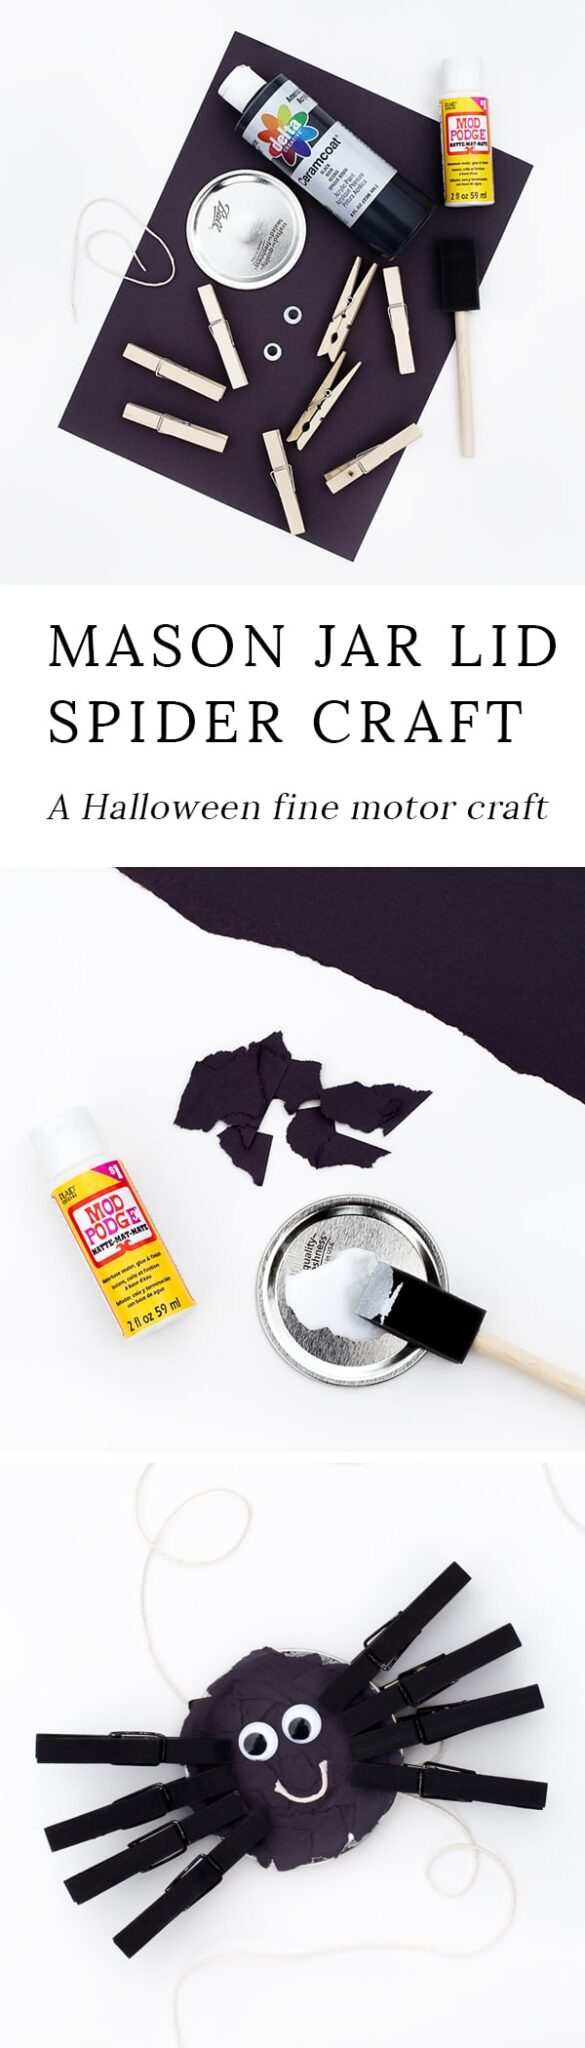 This adorable fine motor spider craft is created with torn paper, mason jar lids, and clothespins. It's the perfect family-friendly Halloween craft for kids!